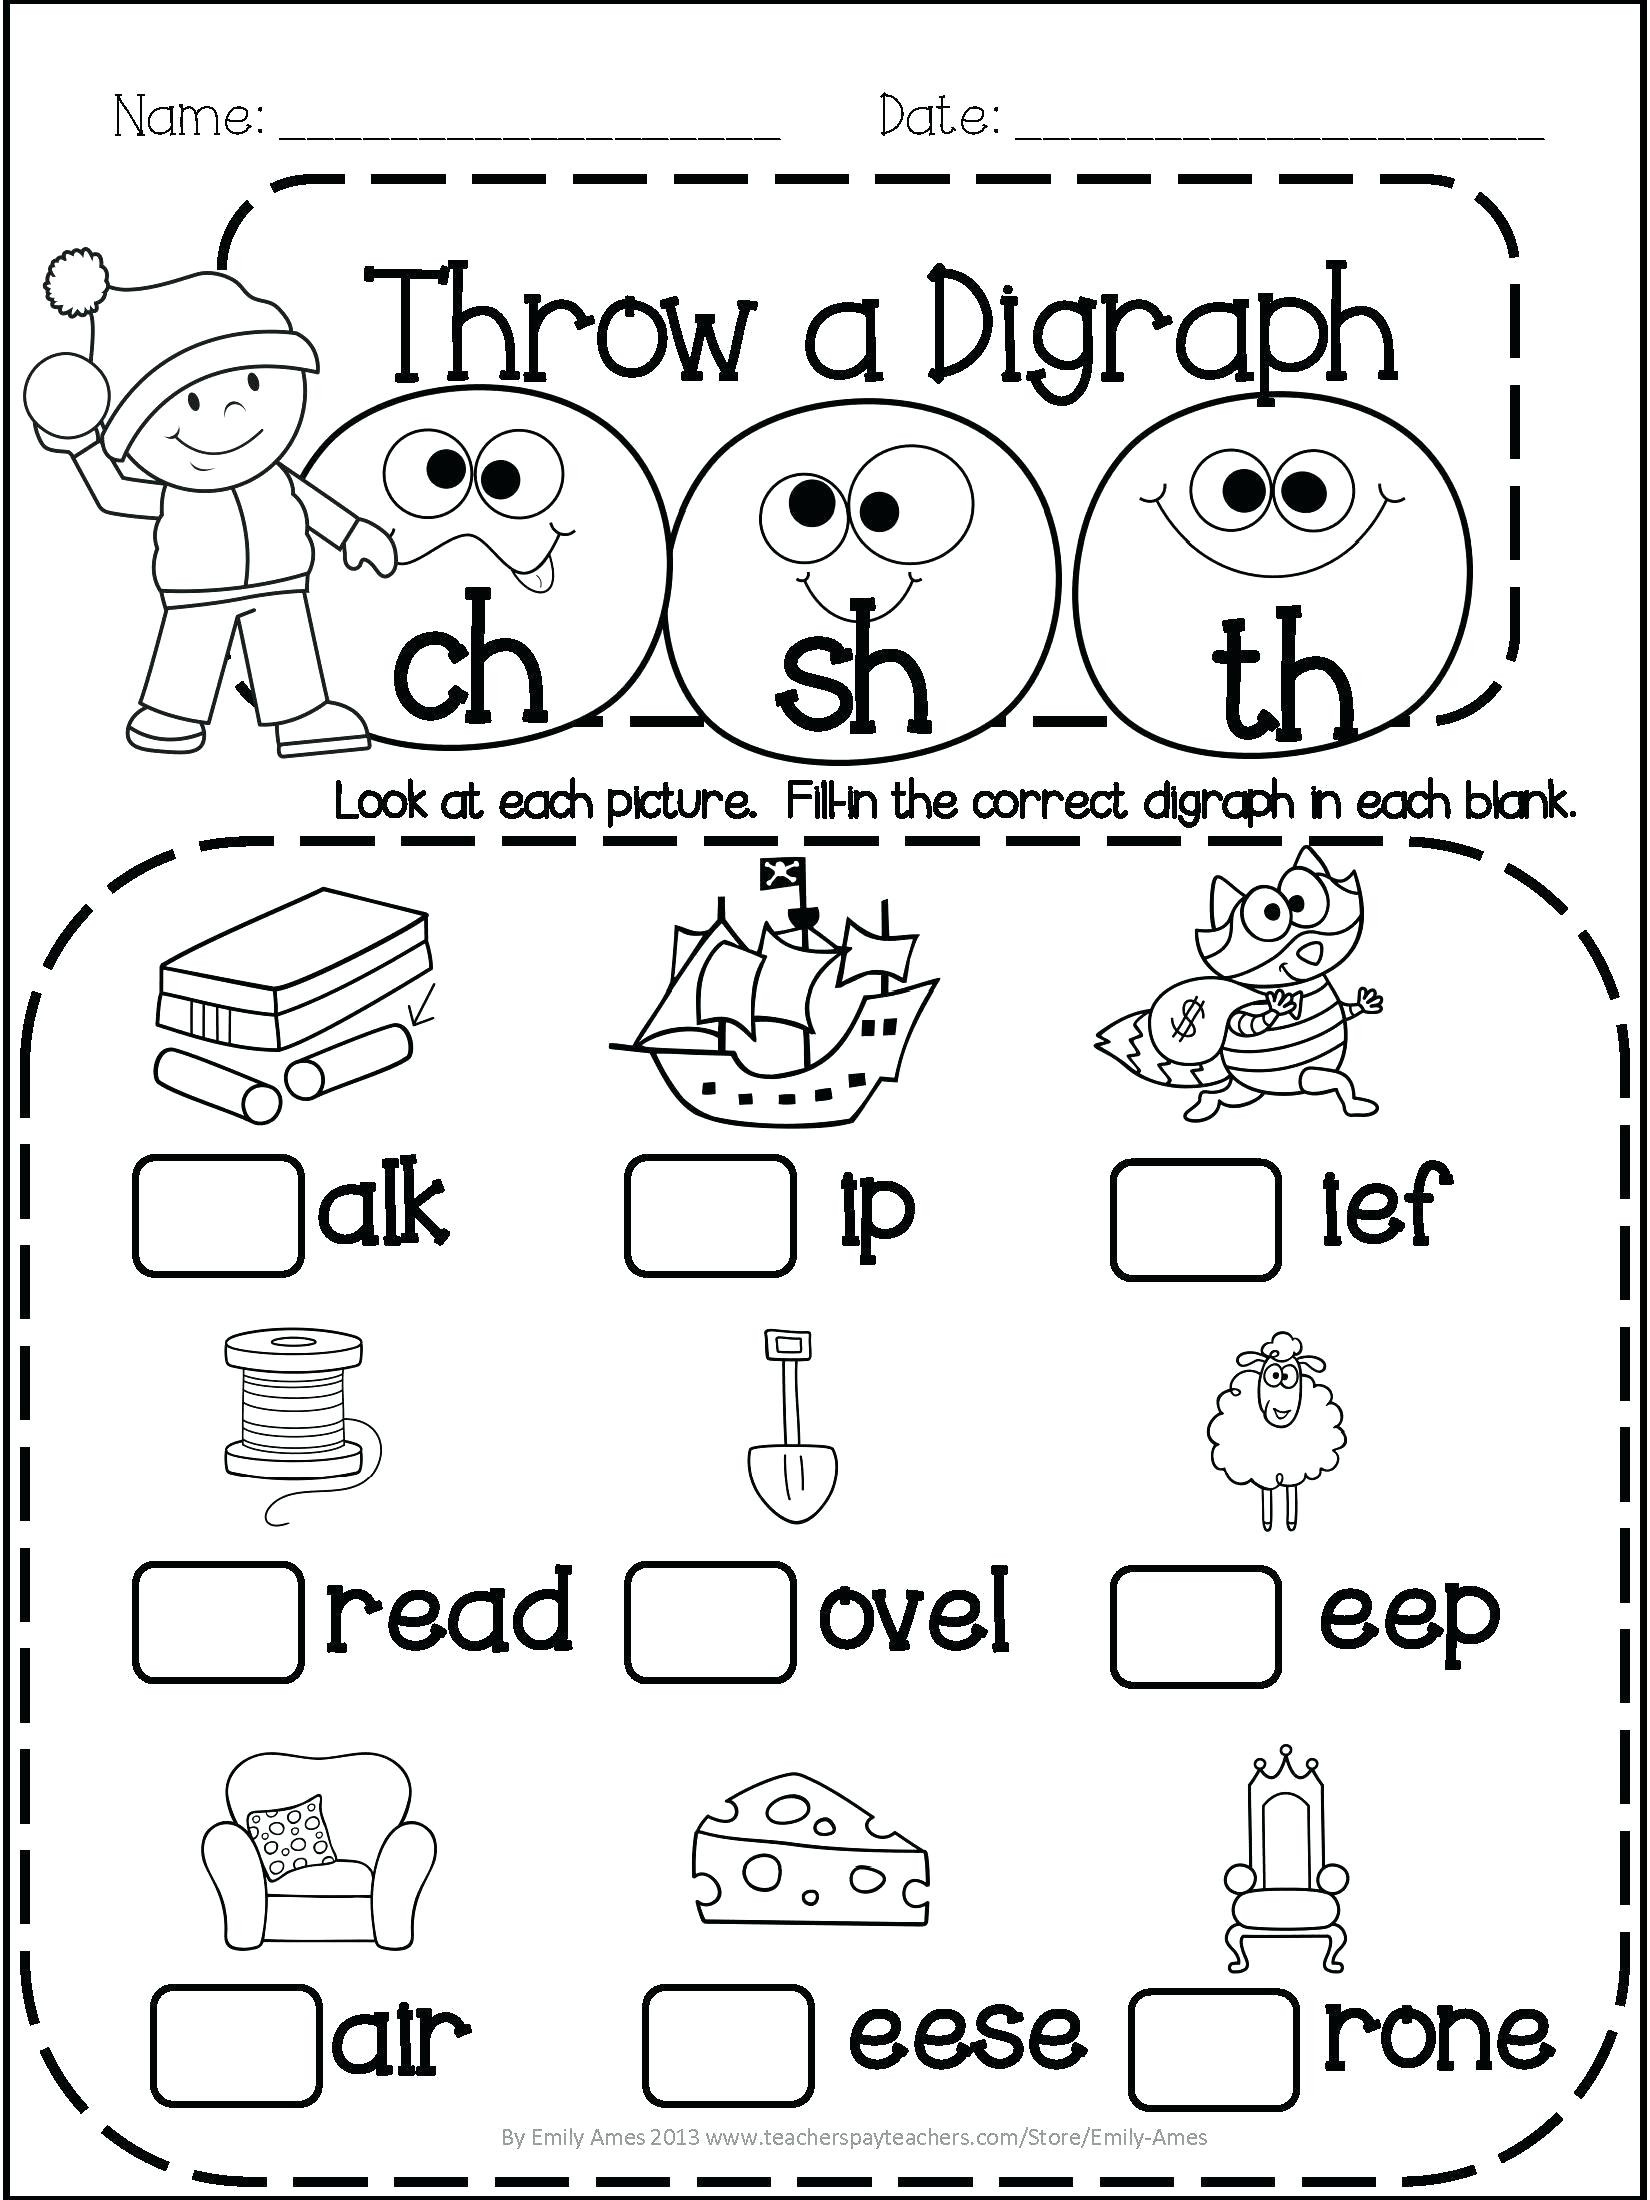 1st Grade Reading Worksheets Printable Math Worksheet Outstanding English Worksheets for 1st Grade